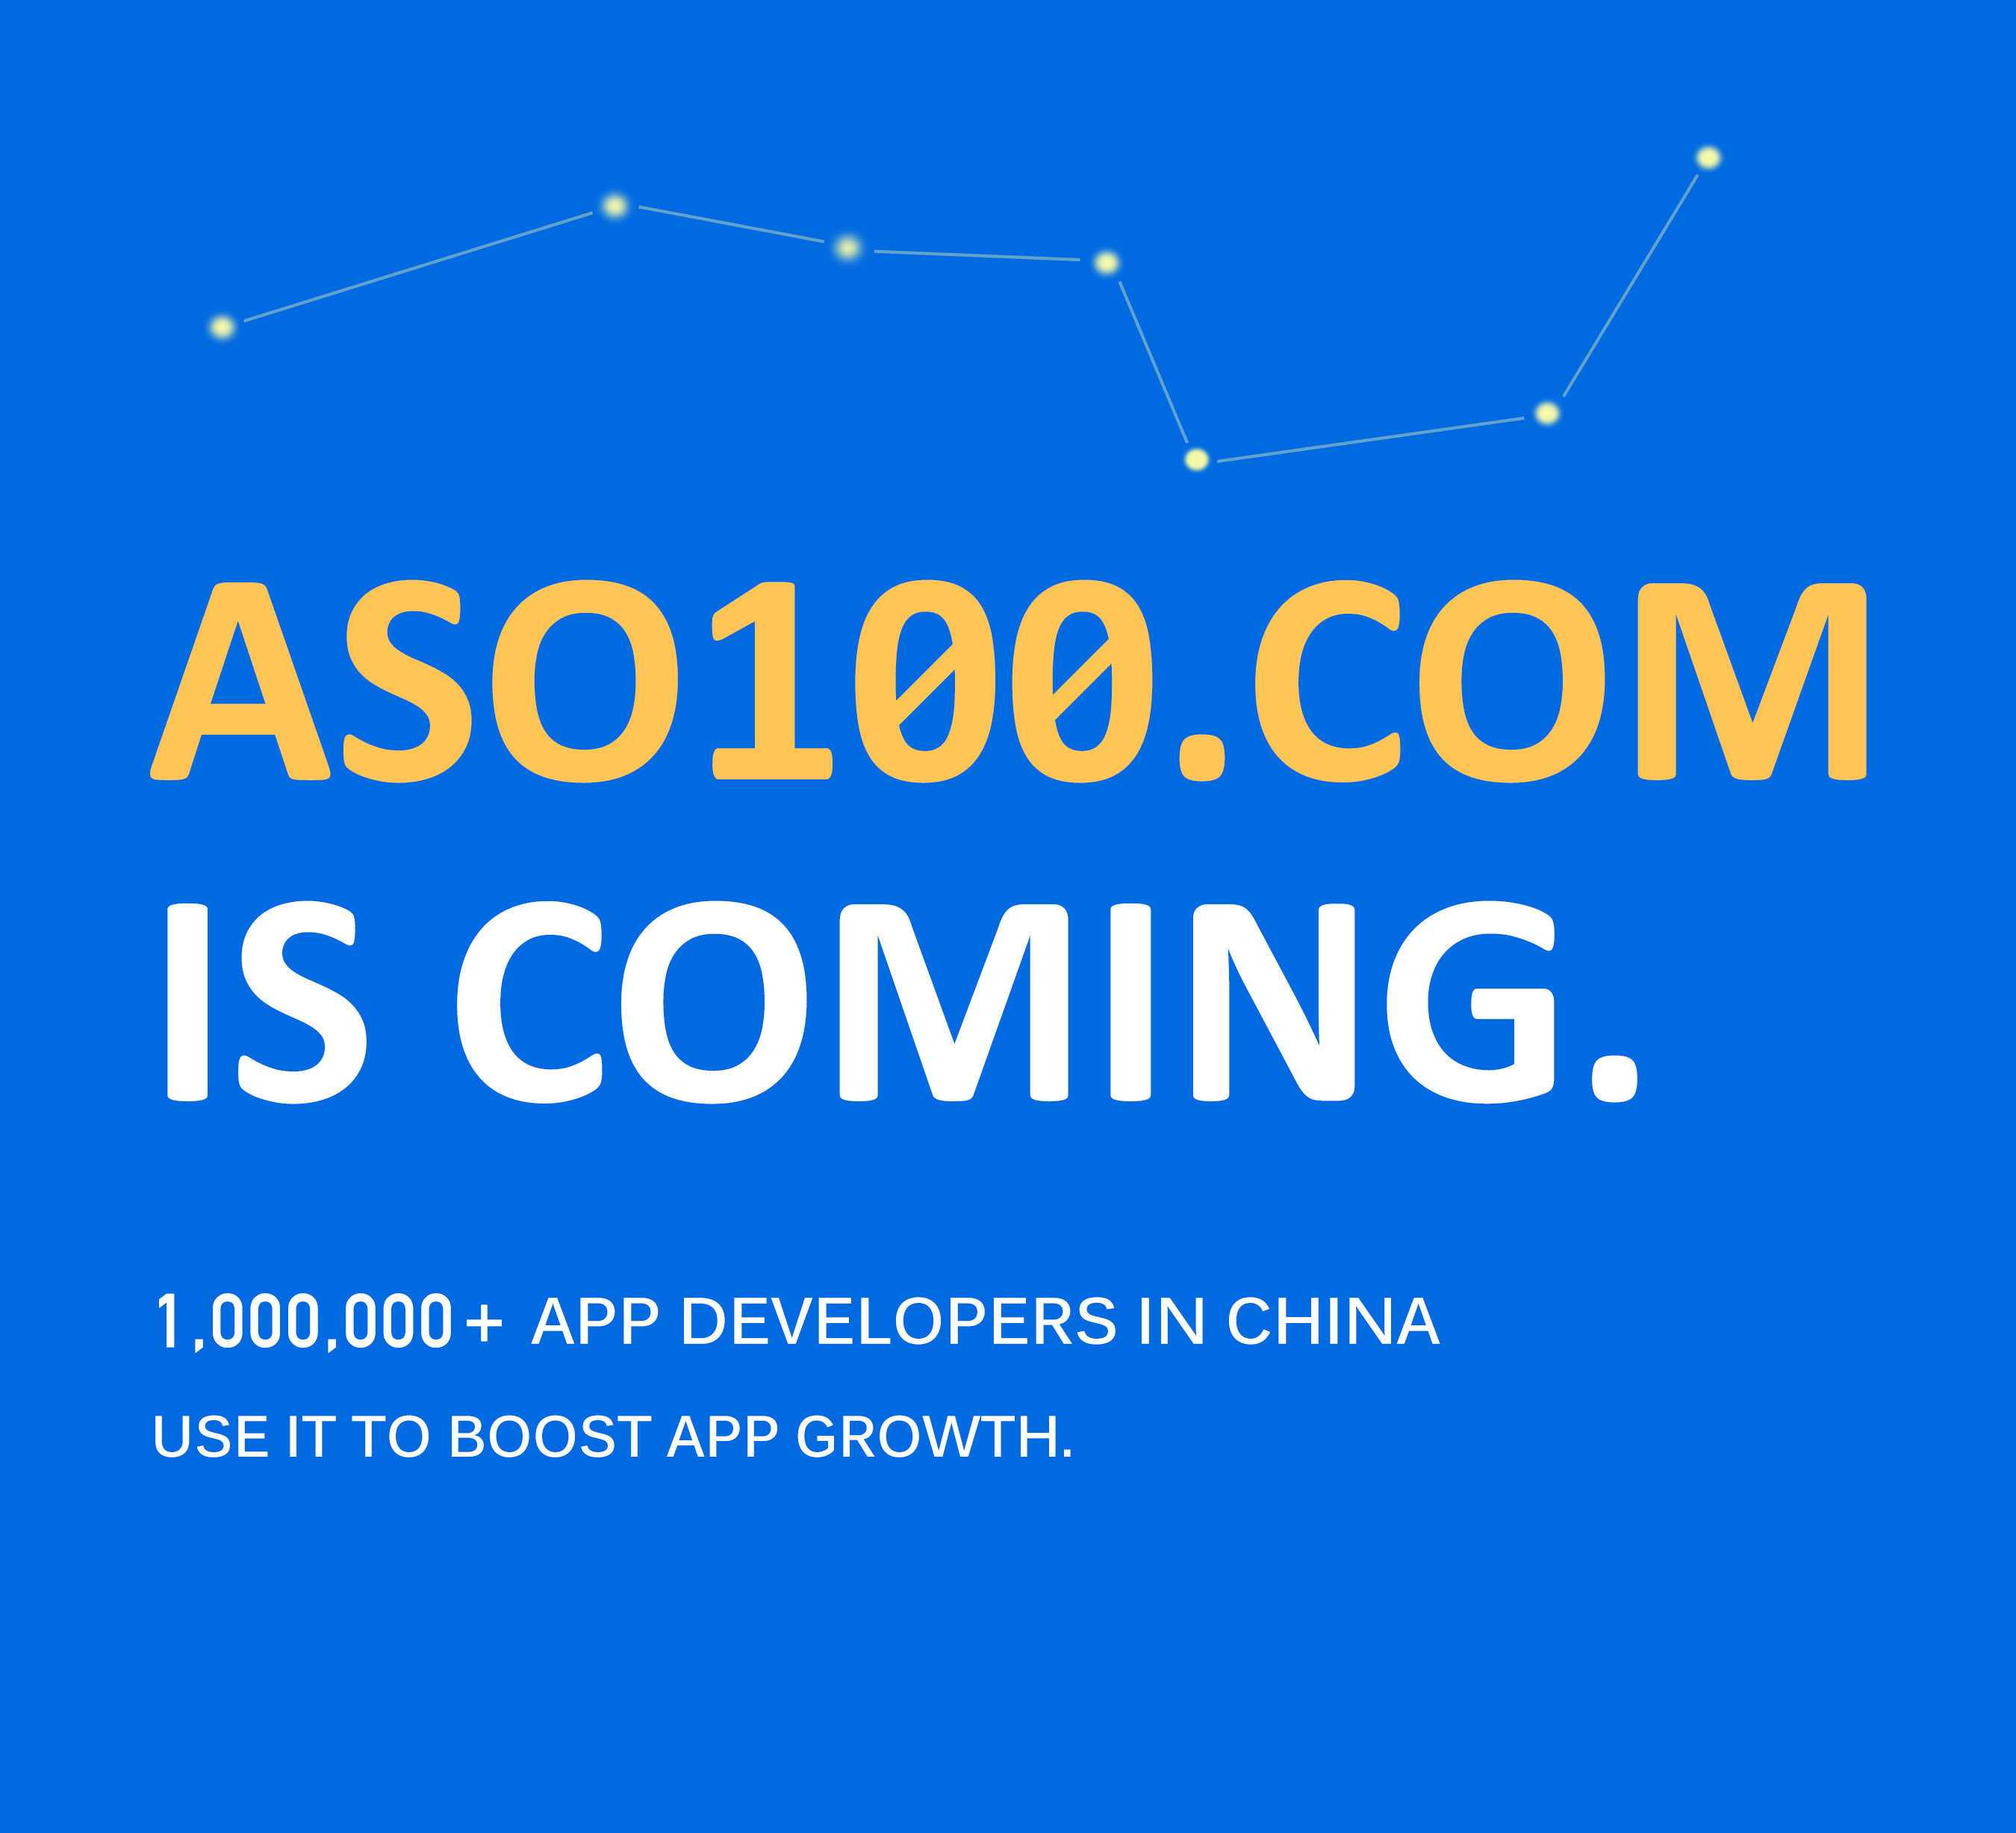 ASO100 Launches its First International Mobile Promotion Data Business to Help App Expand Overseas